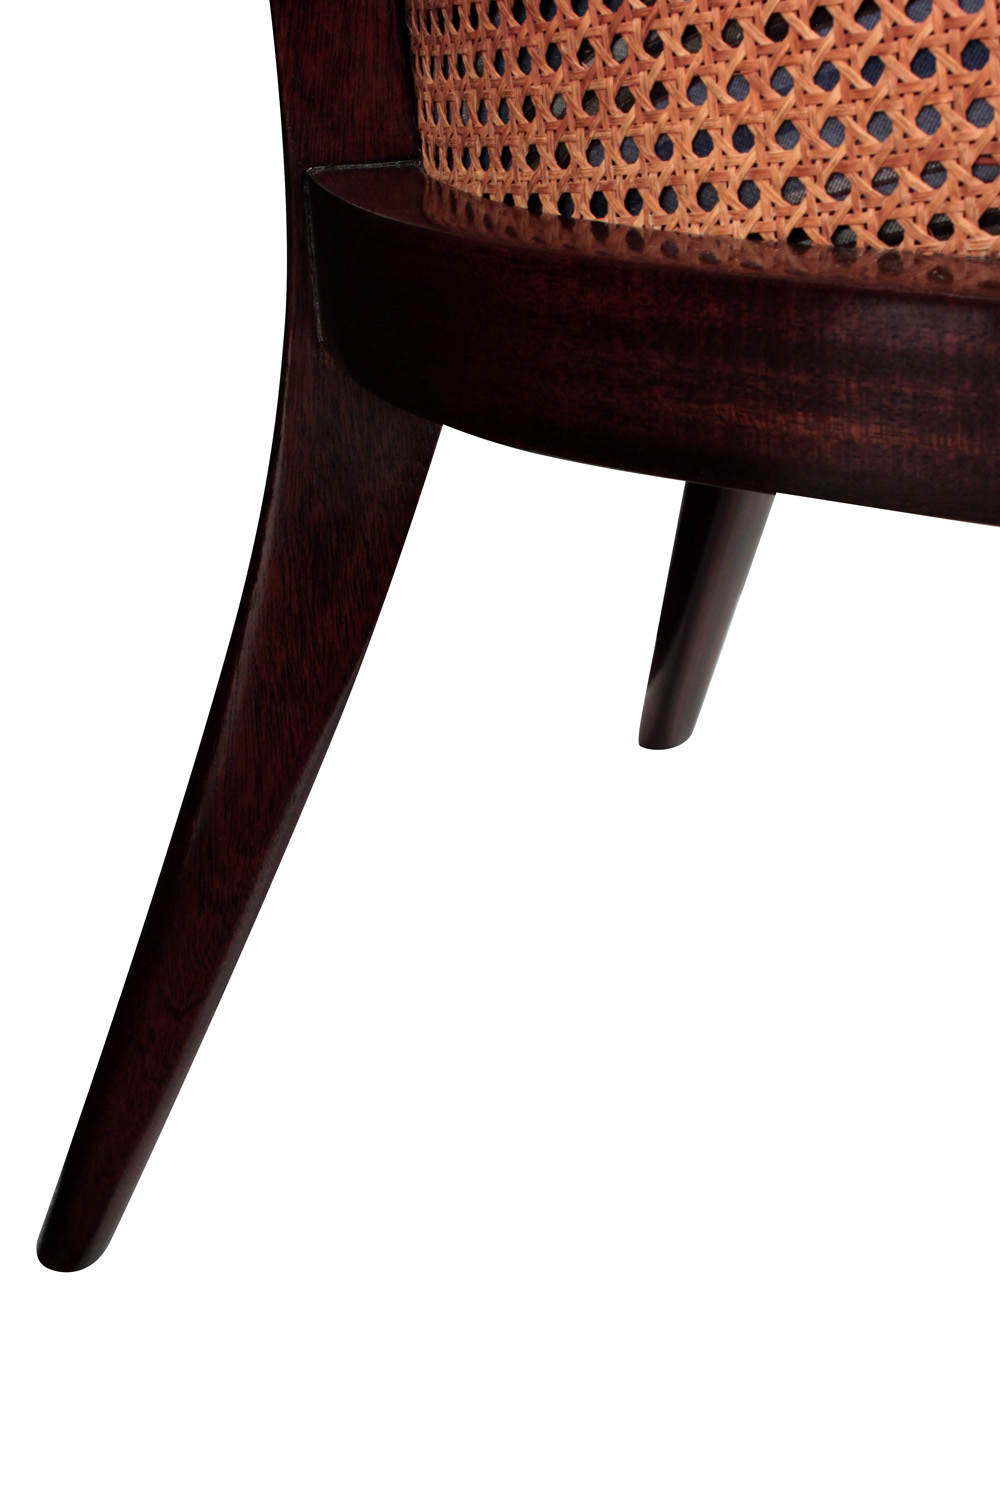 Probber 75 curvy bkcaned #915 loungechairs42 detail4 hires.jpg